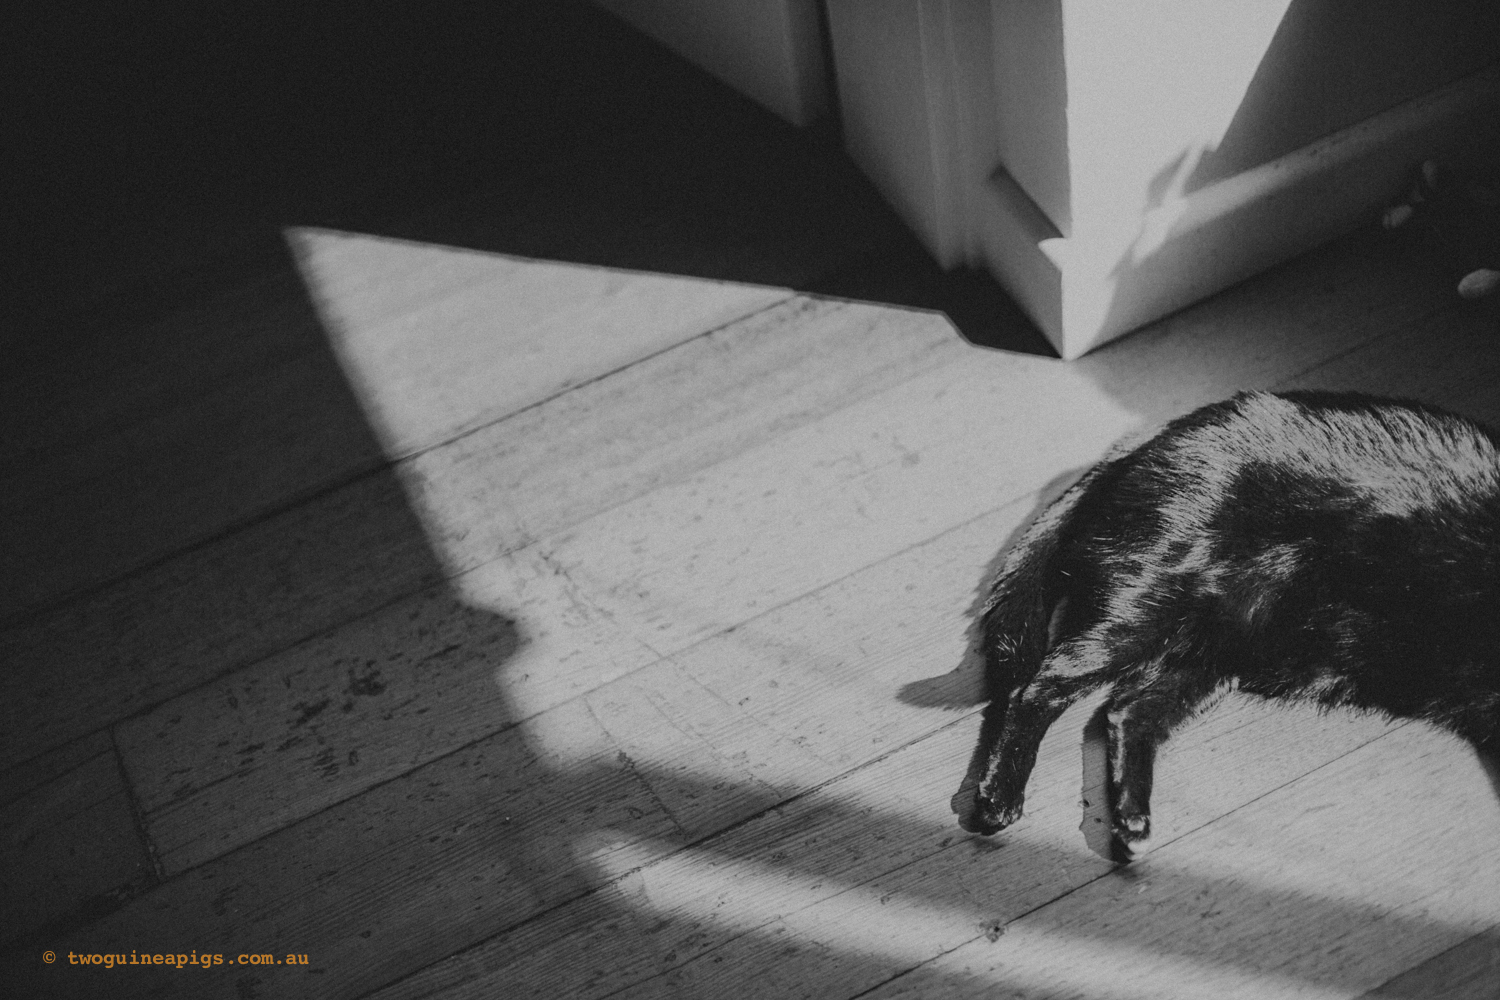 twoguineapigs_pet_photography_pf_sunroom_black_cats_1500-3.jpg